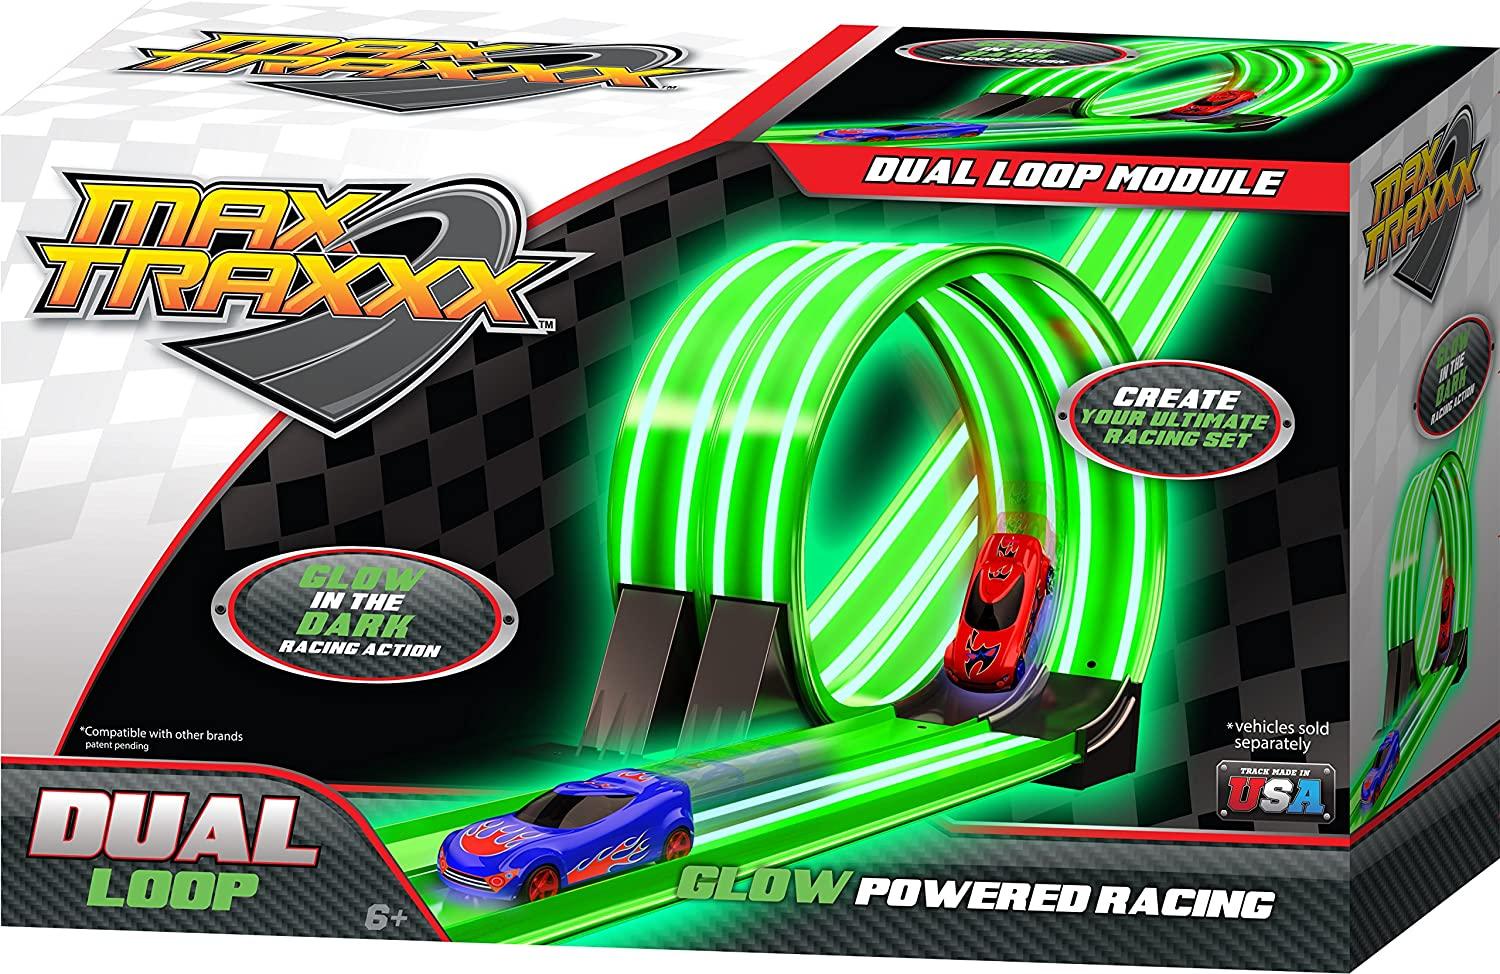 Max Traxxx Tracer Racers Dual Loop Add On Module for Gravity Drive and Remote Control Sets